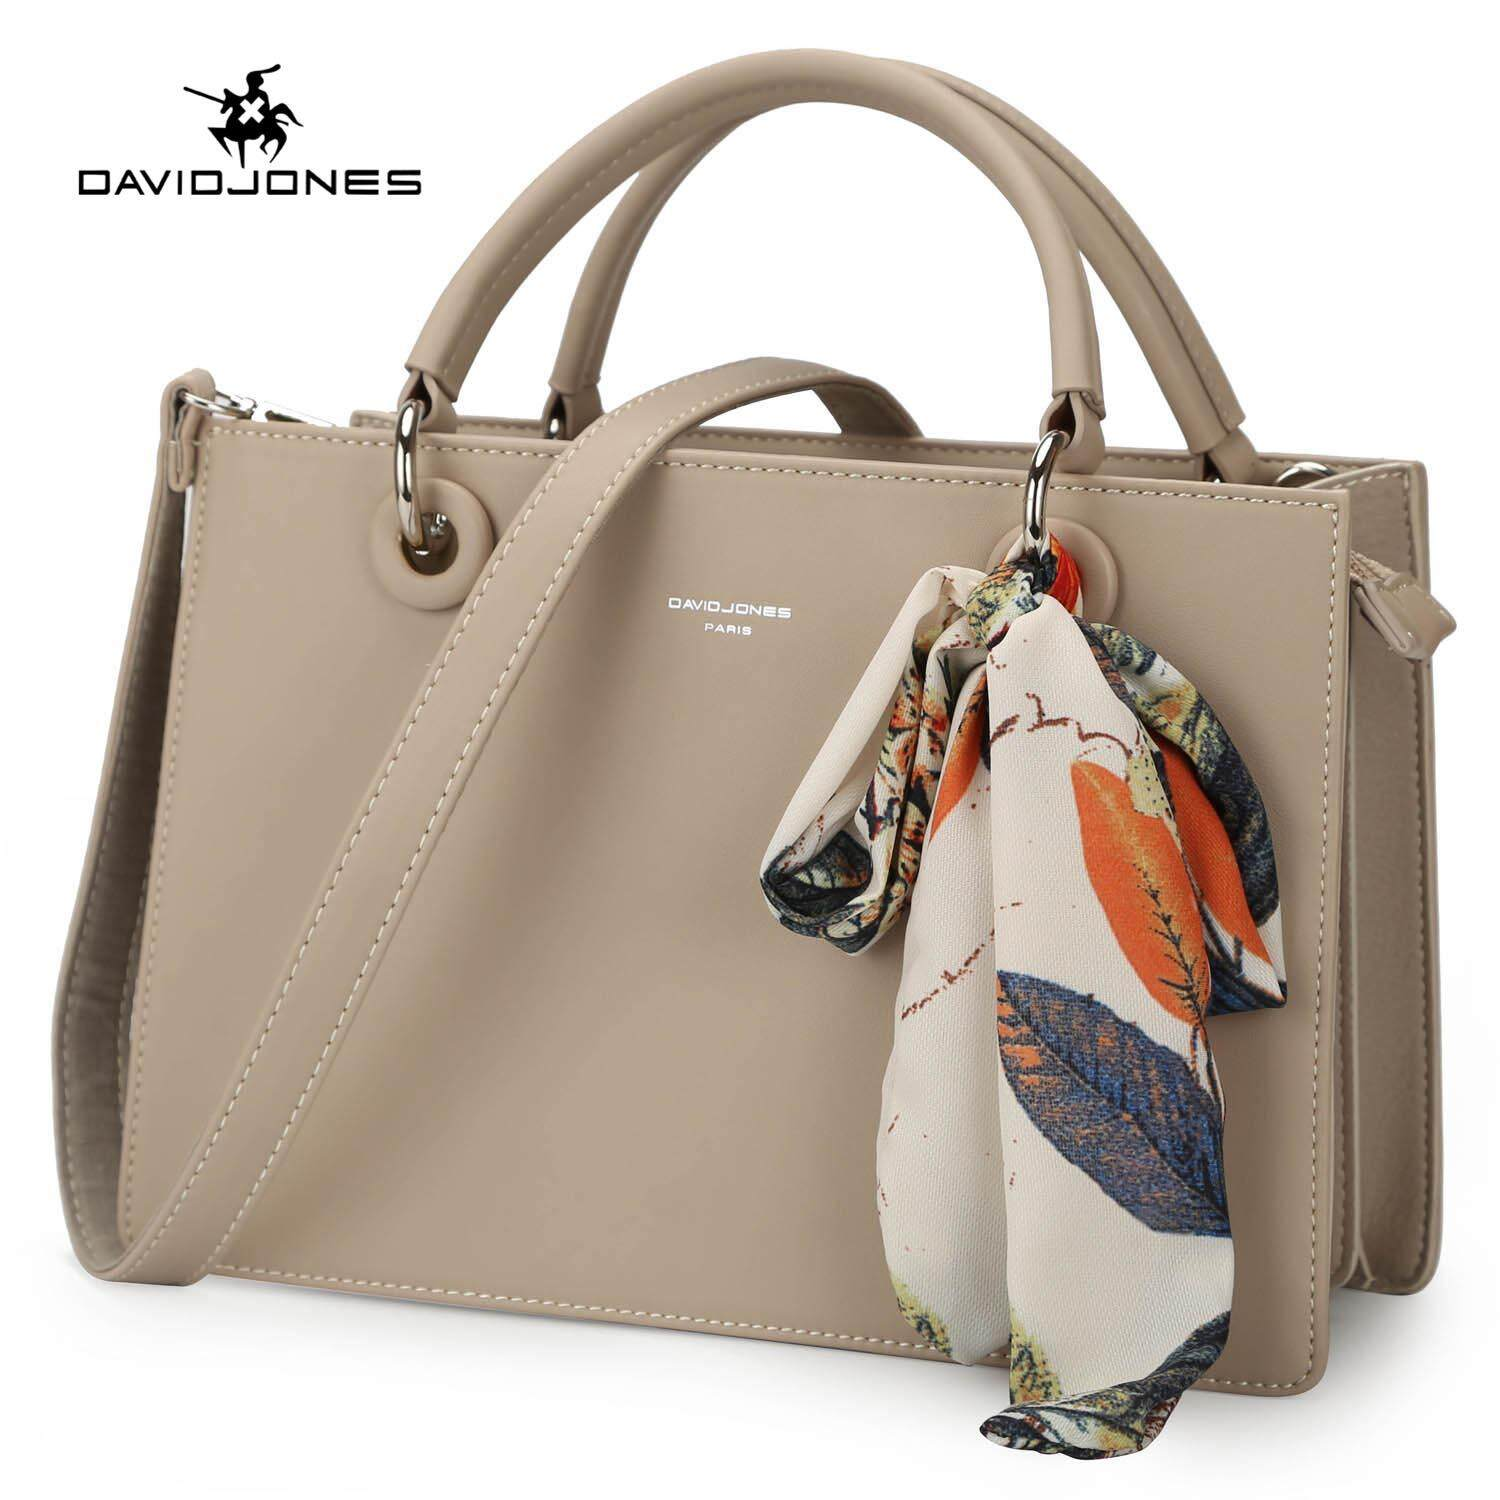 David jones bags for women philippines david jones womens bags for sale  prices reviews lazada jpg 725511f2156a8